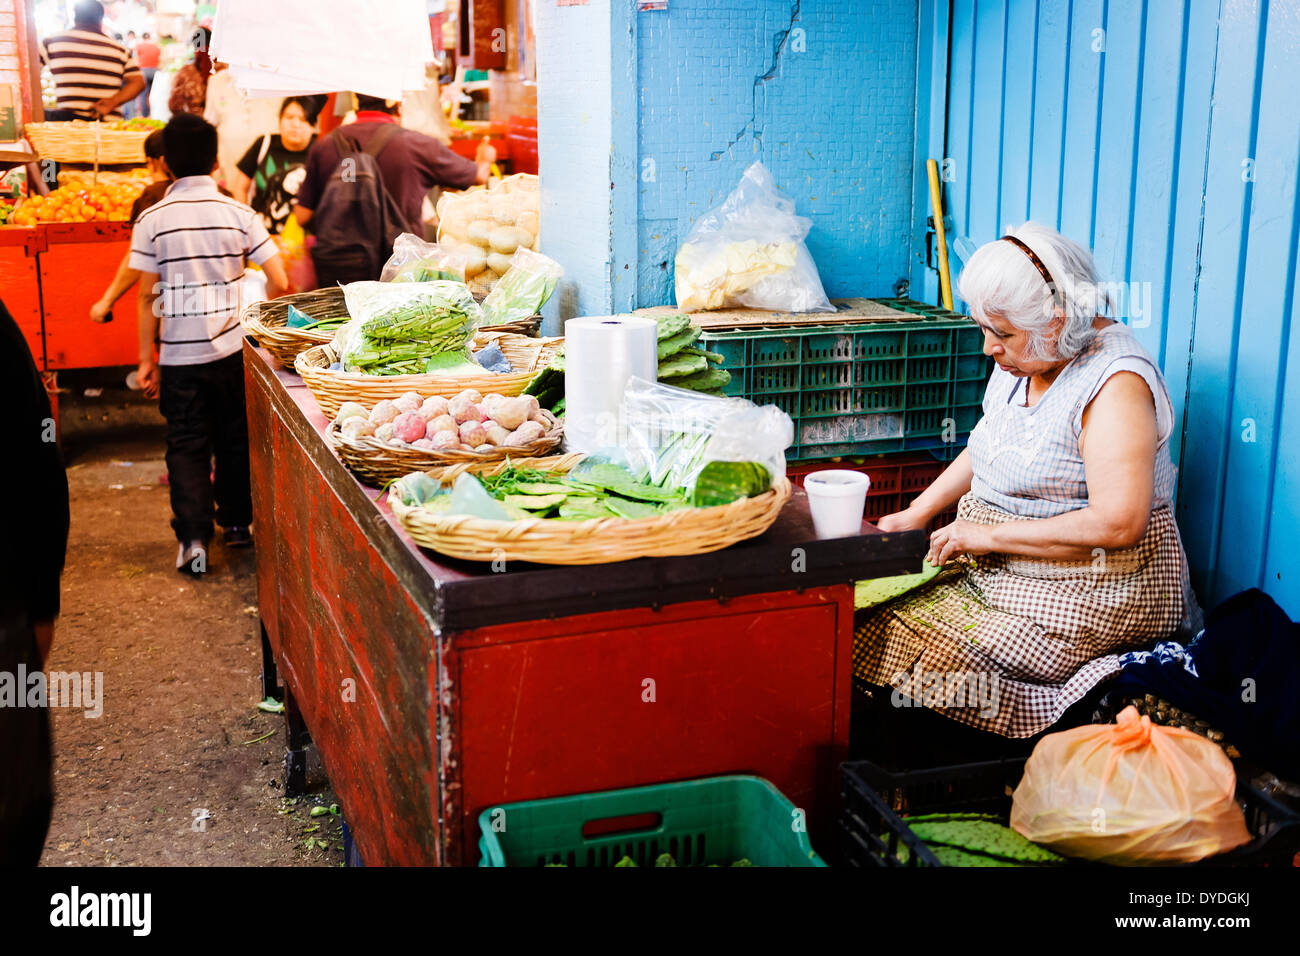 A vendor preparing cactus paddles at Mercado de la Merced in Mexico City. - Stock Image